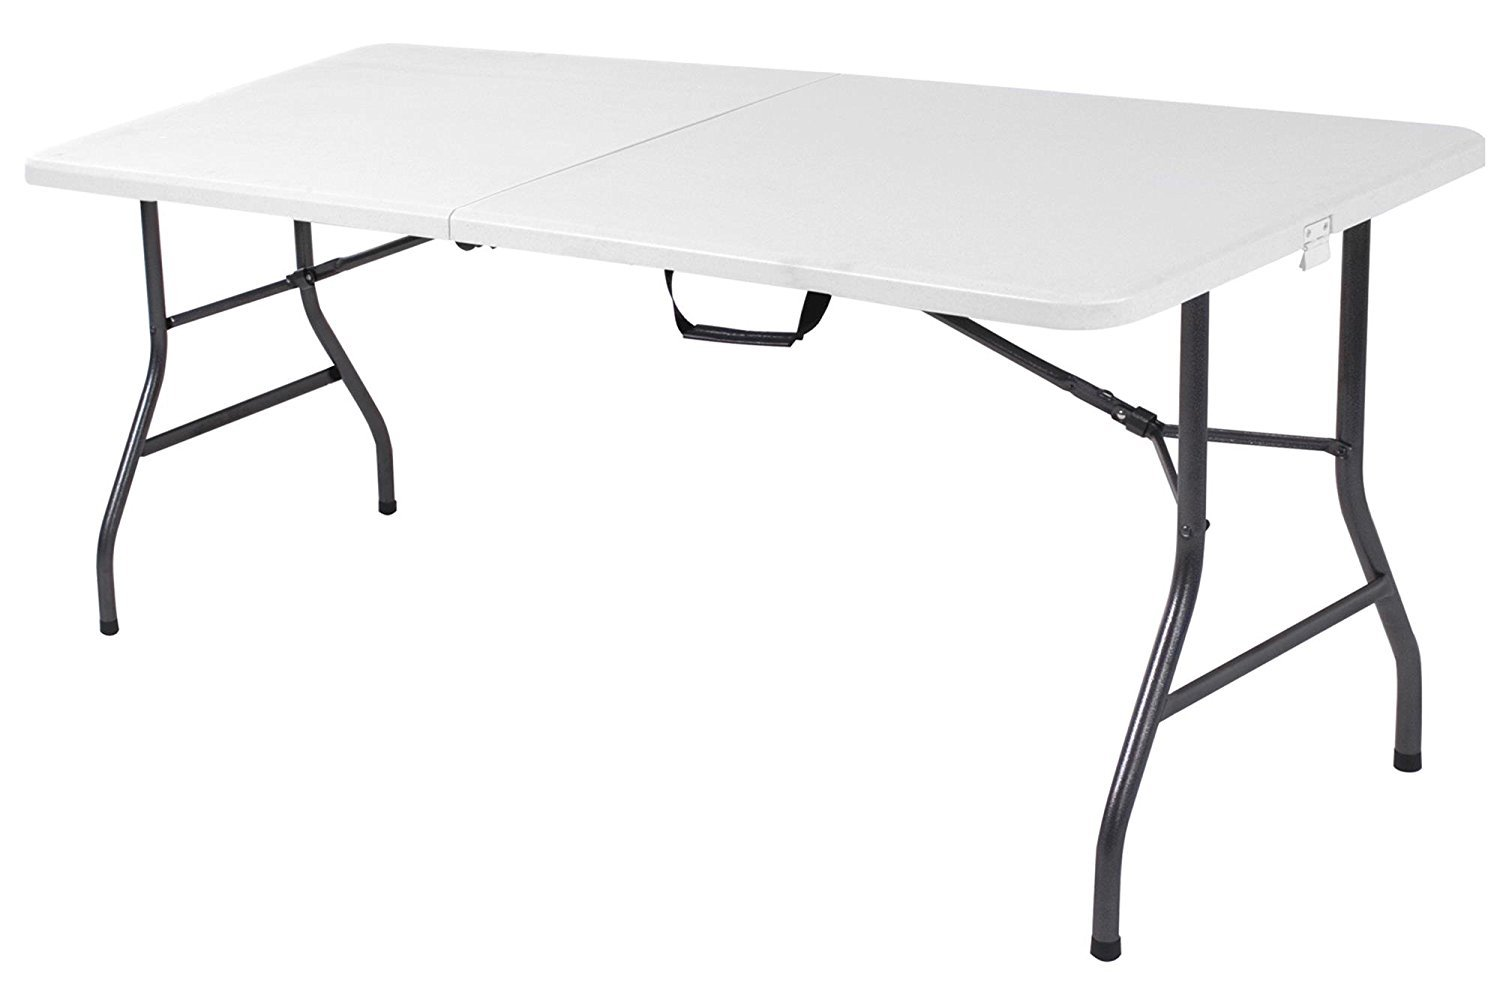 6 Foot Plastic Folding Table - Folds in Half with Carrying Handle - Rectangular - Lightweight and Portable - White Resin with Sturdy Steel Frame - by Ontario Furniture by Ontario Furniture